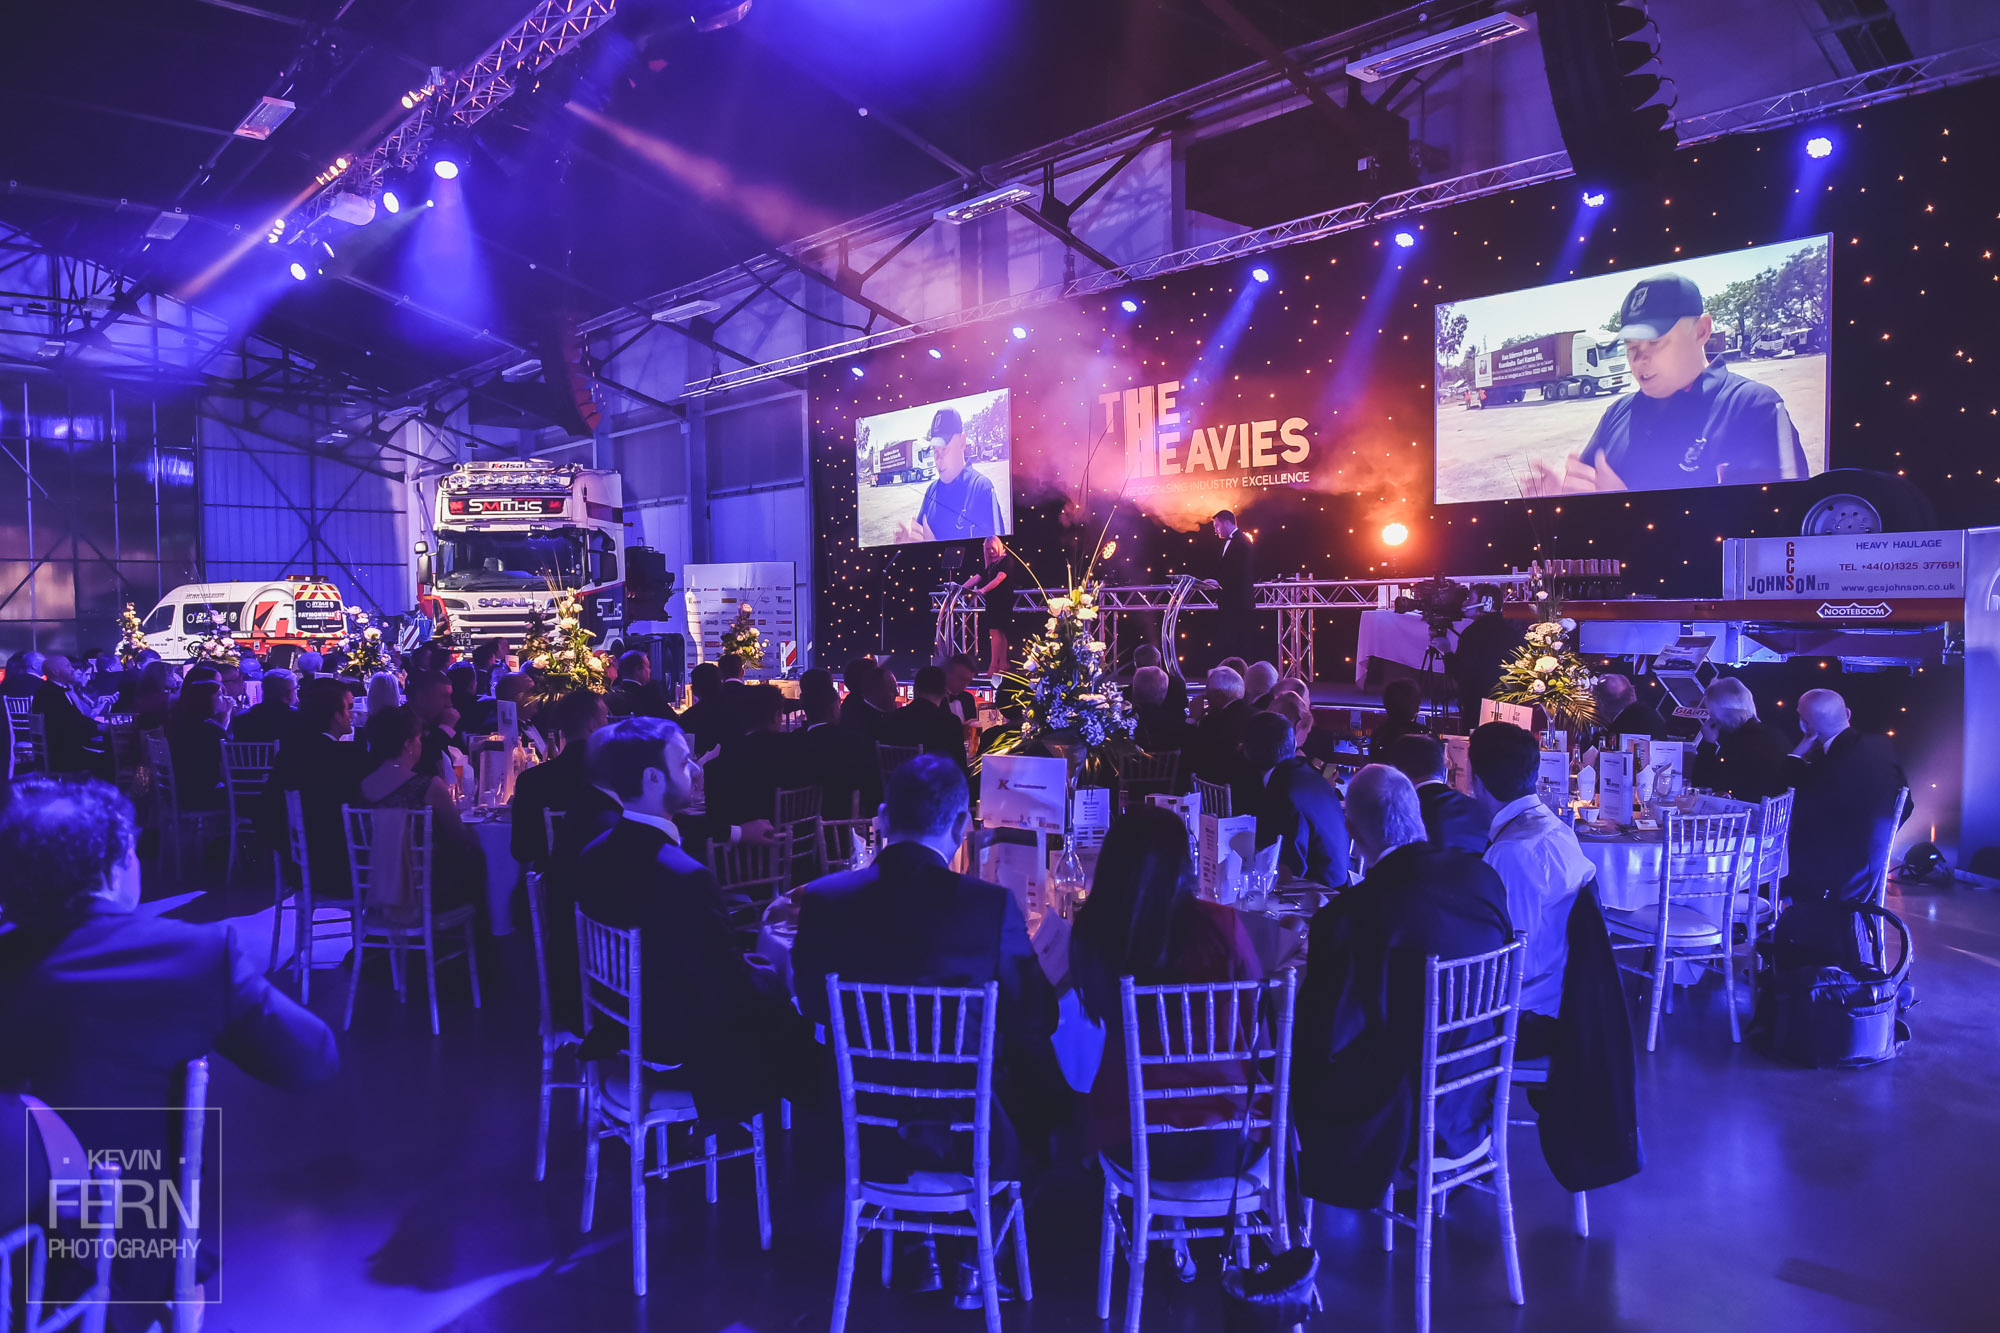 The Heavies corporate awards photography in Peterborough